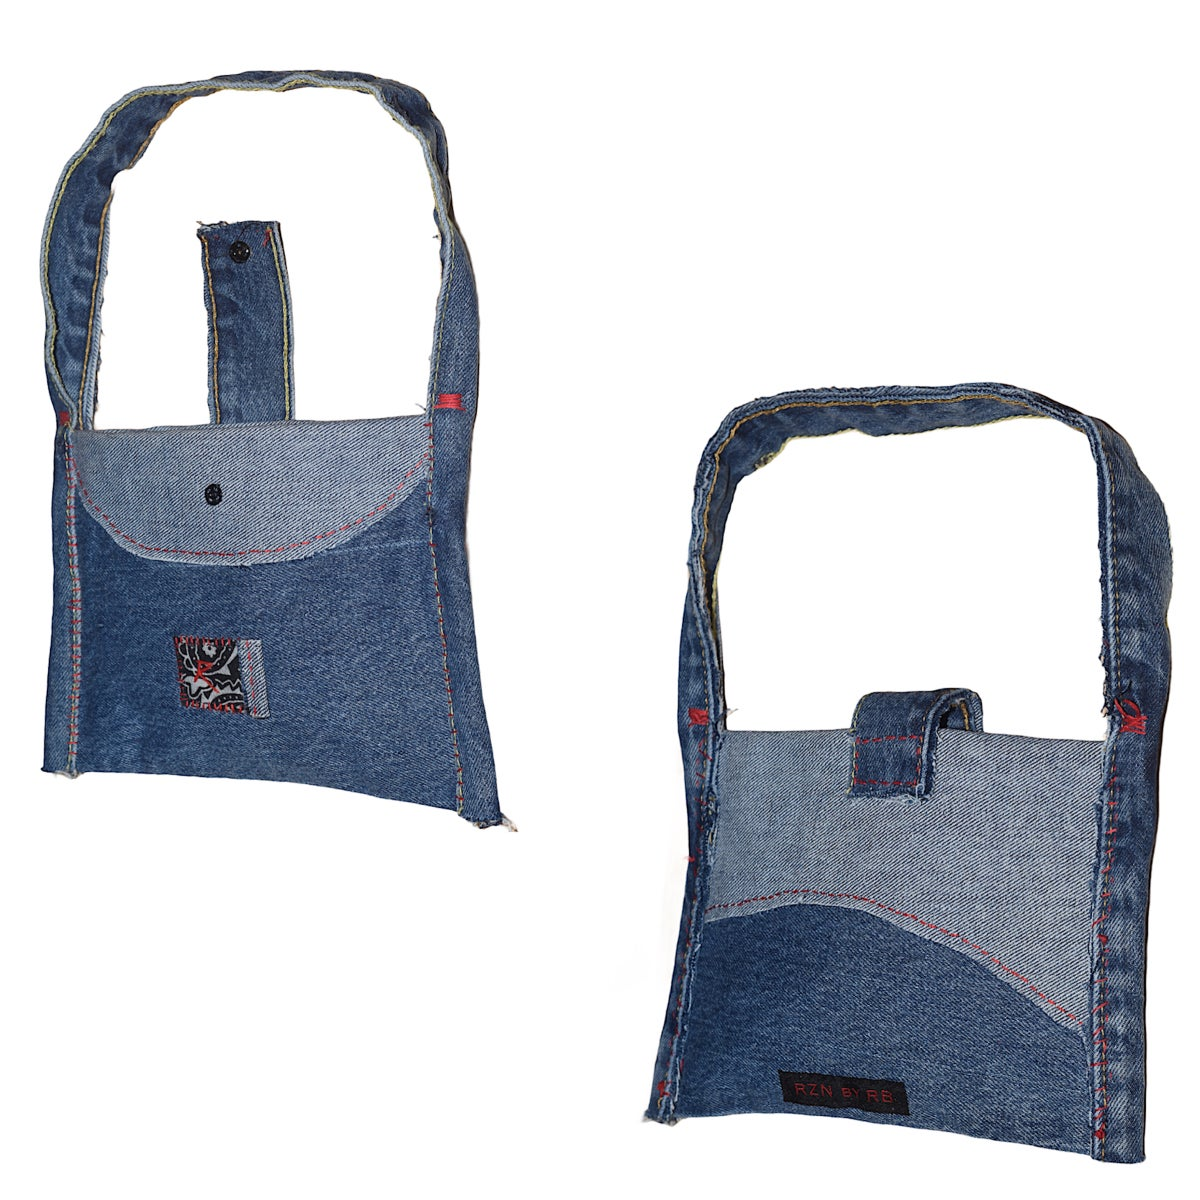 """Image of RZN by RB """"Demi Cher"""" 1/1 denim jean purse"""